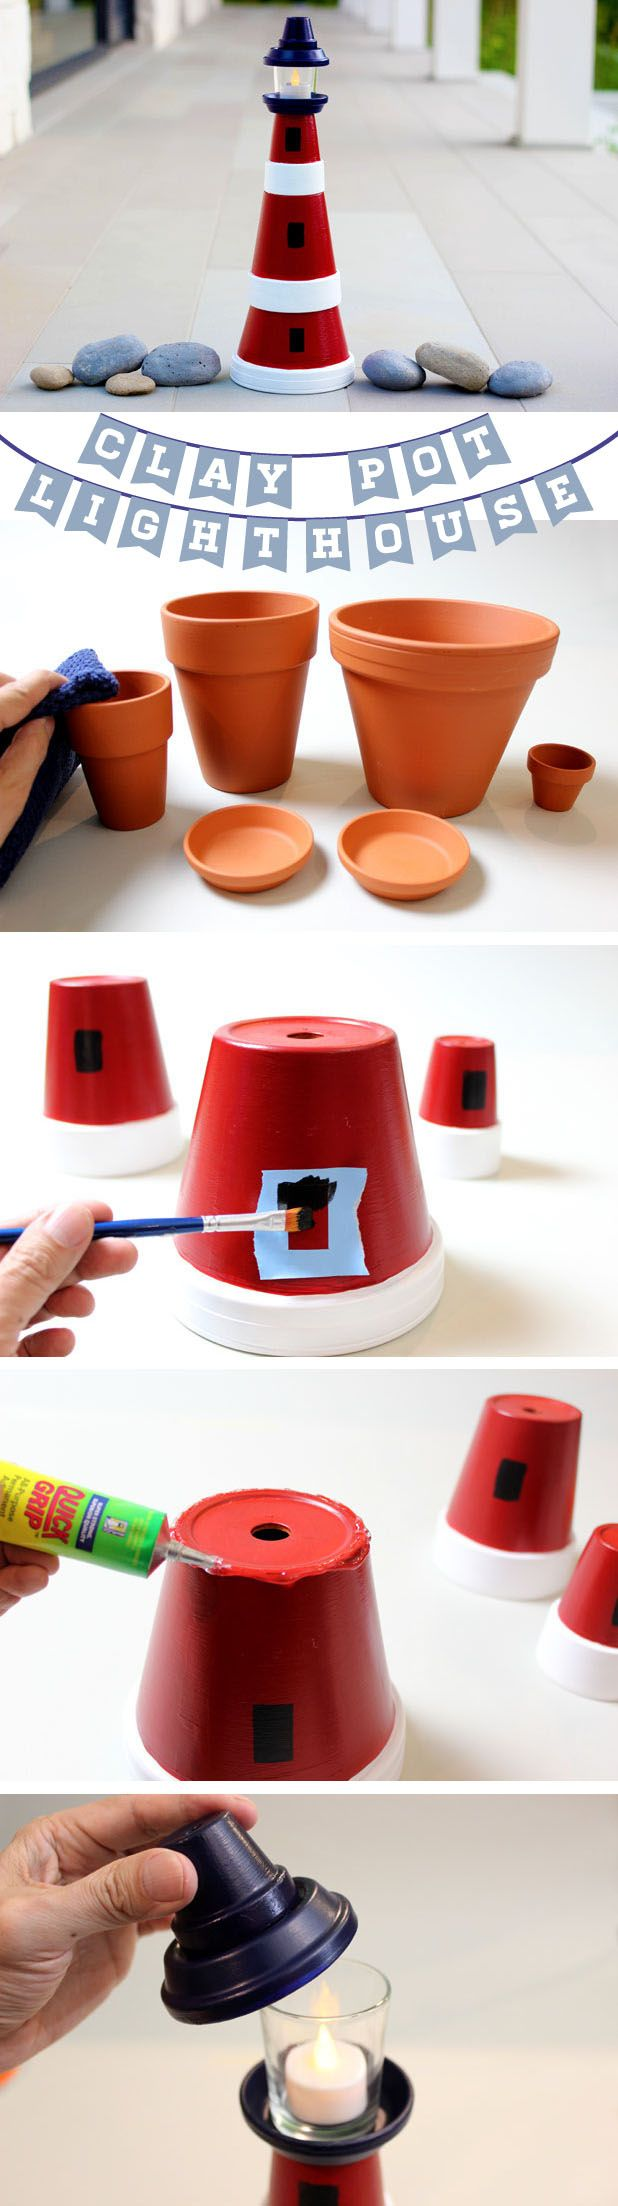 Go nautical this spring and summer with this easy to follow clay pot lighthouse tutorial! Take varying sizes of clay pots, paint them, and feature a cute lantern on top! A simple way to light up your garden or porch! http://www.ehow.com/how_4882573_make-clay-pot-lighthouse.html?utm_source=pinterest.com&utm_medium=referral&utm_content=inline&utm_campaign=fanpage